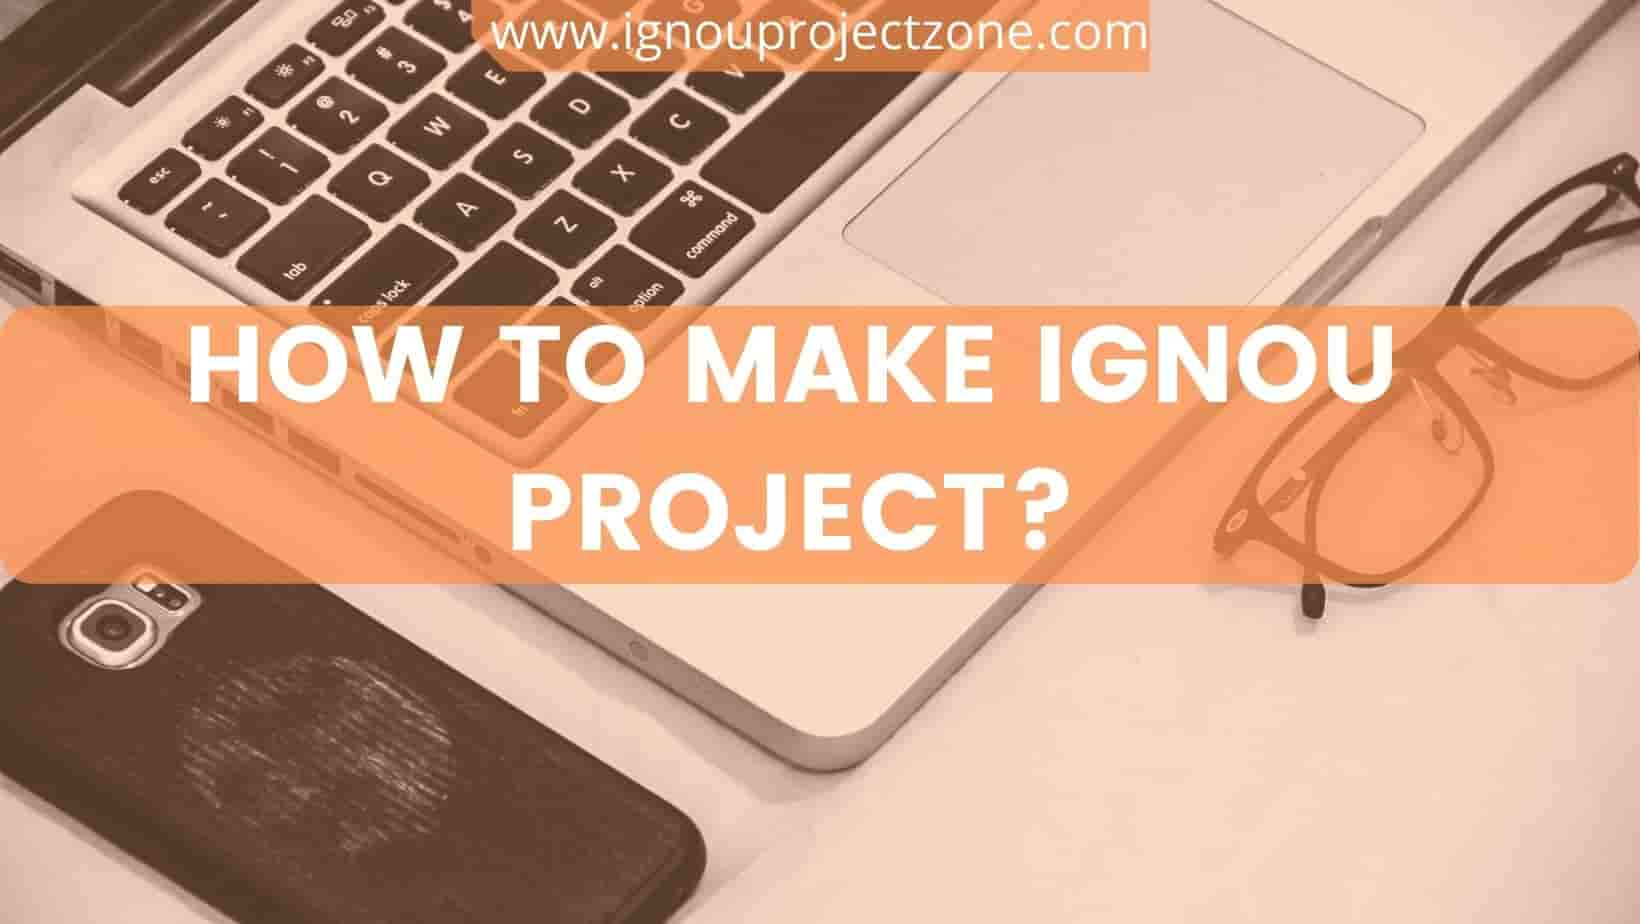 HOW TO MAKE IGNOU PROJECT?